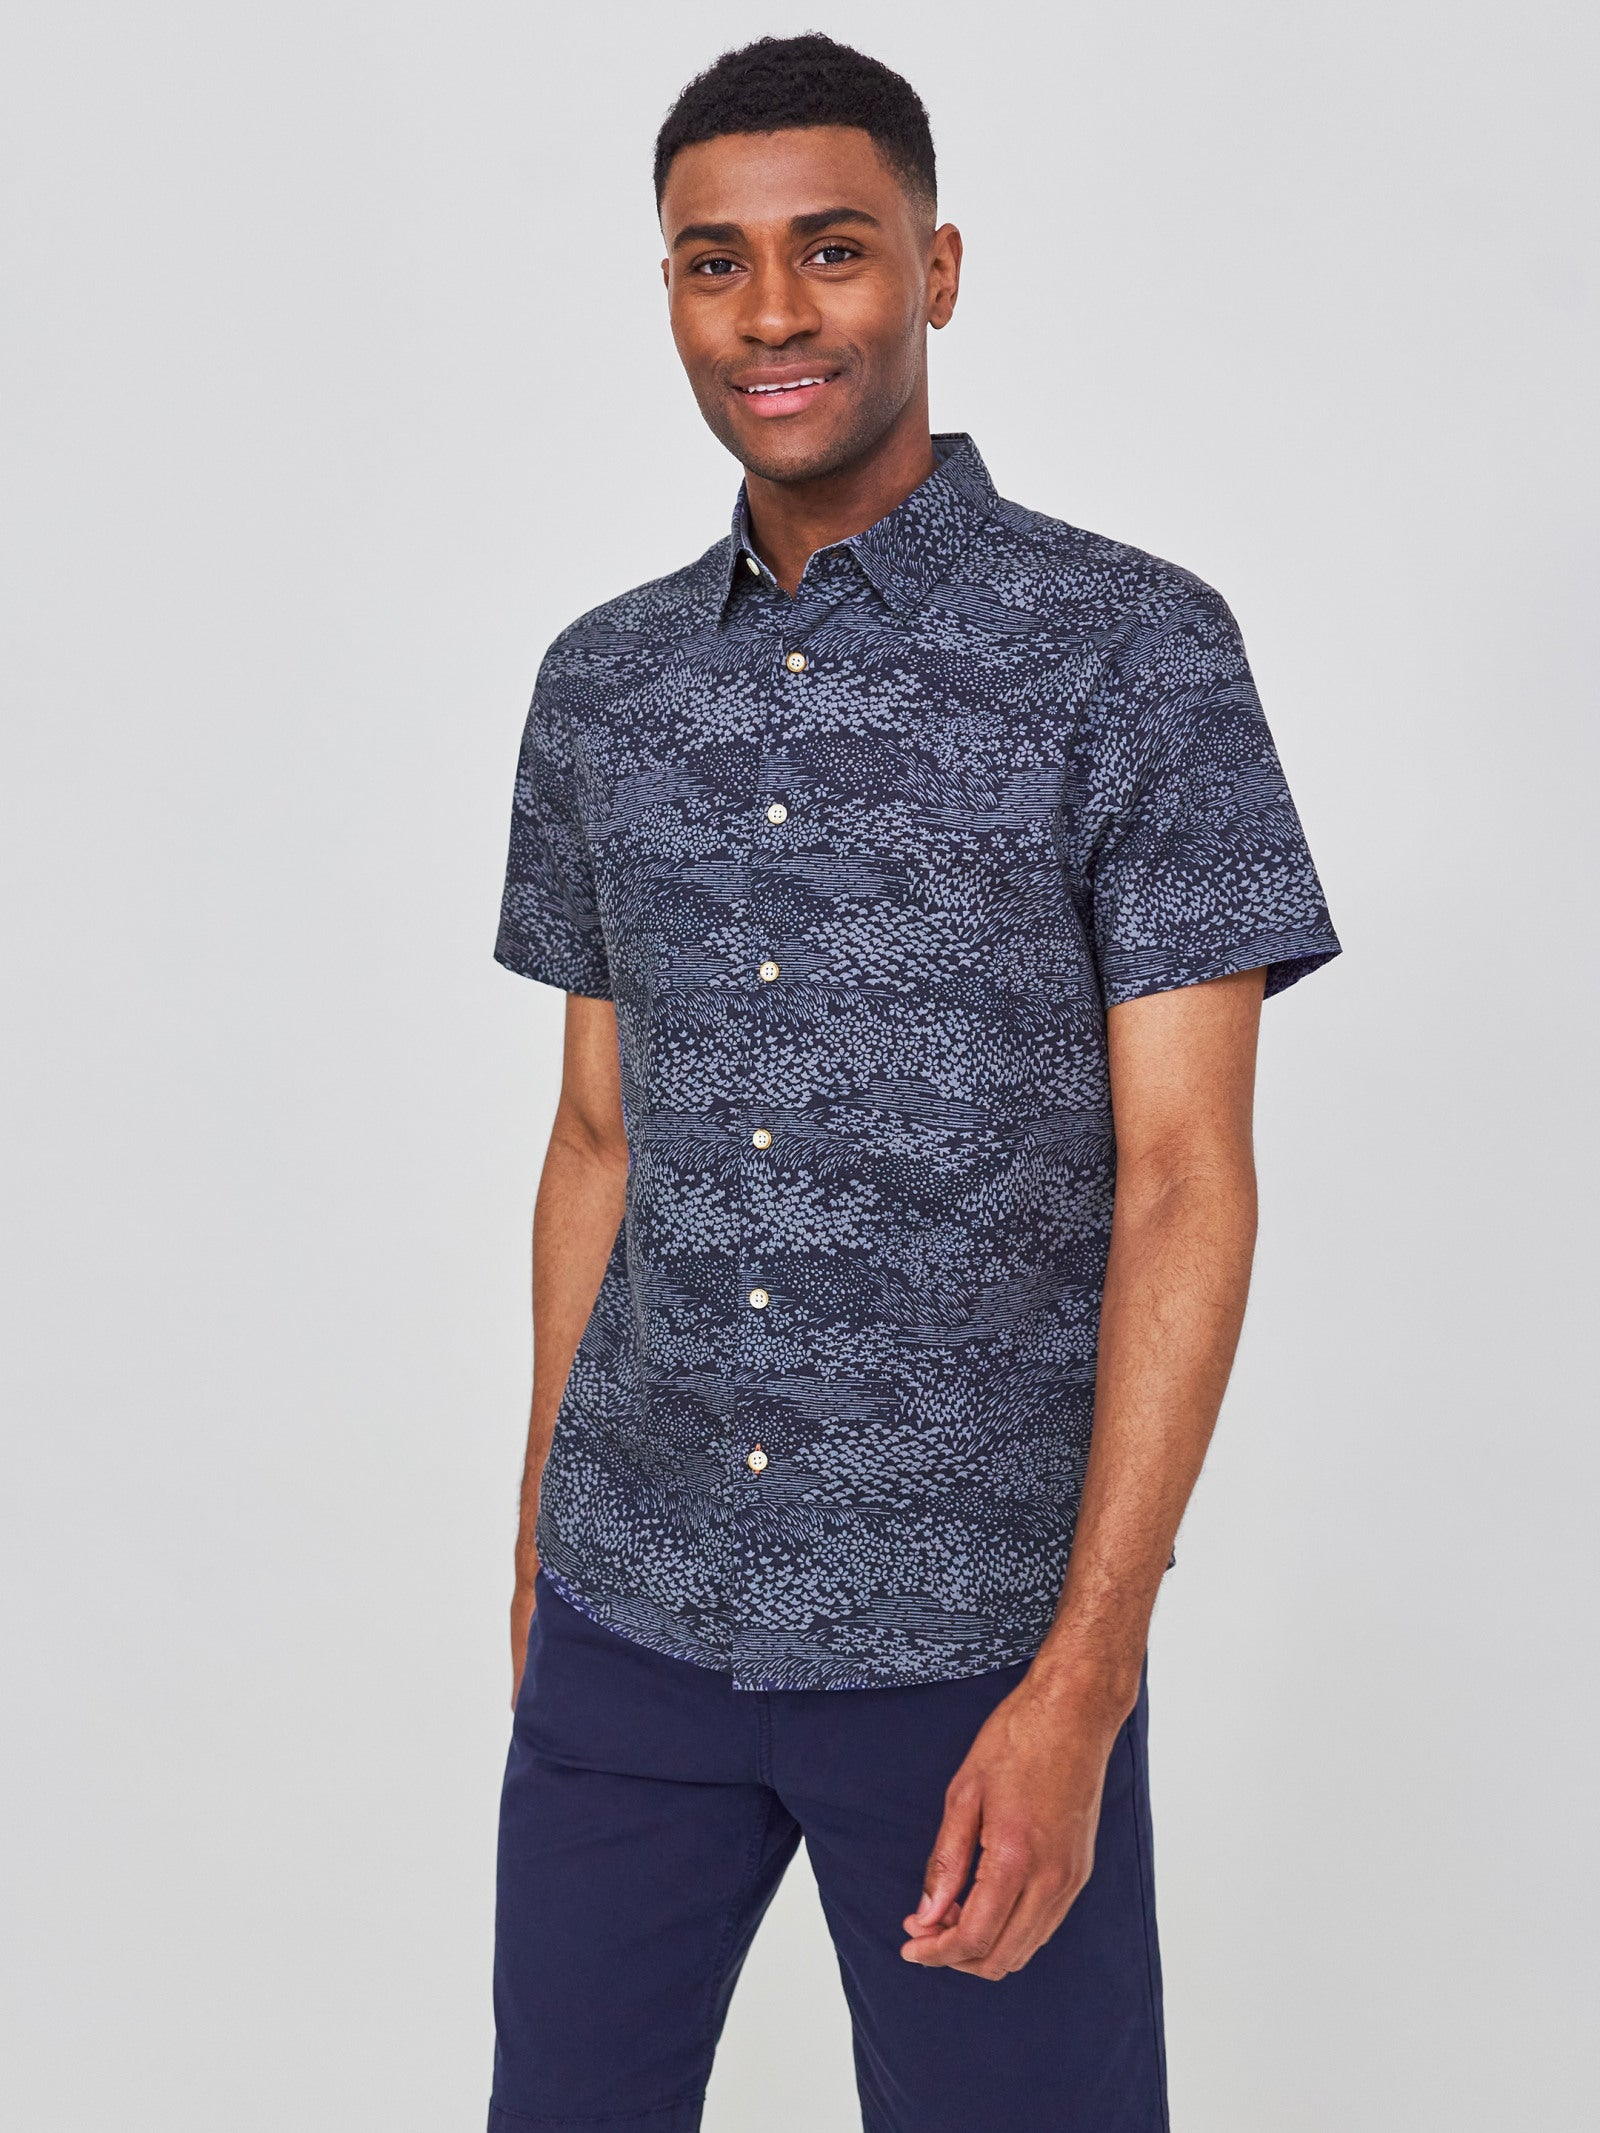 Ocean Print Shirt in Navy